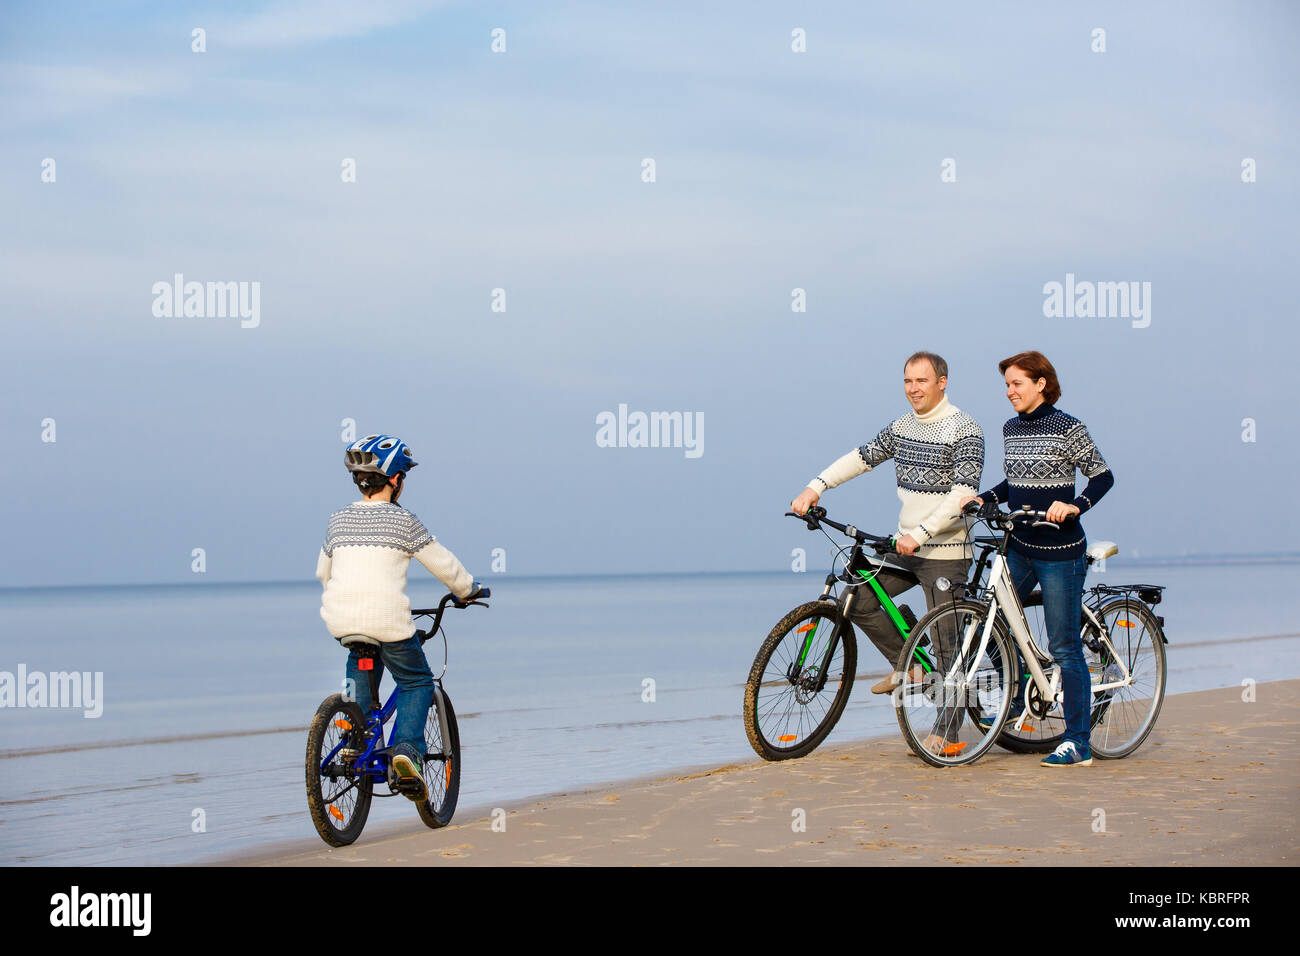 Young family of three riding bicycles on beach Stock Photo